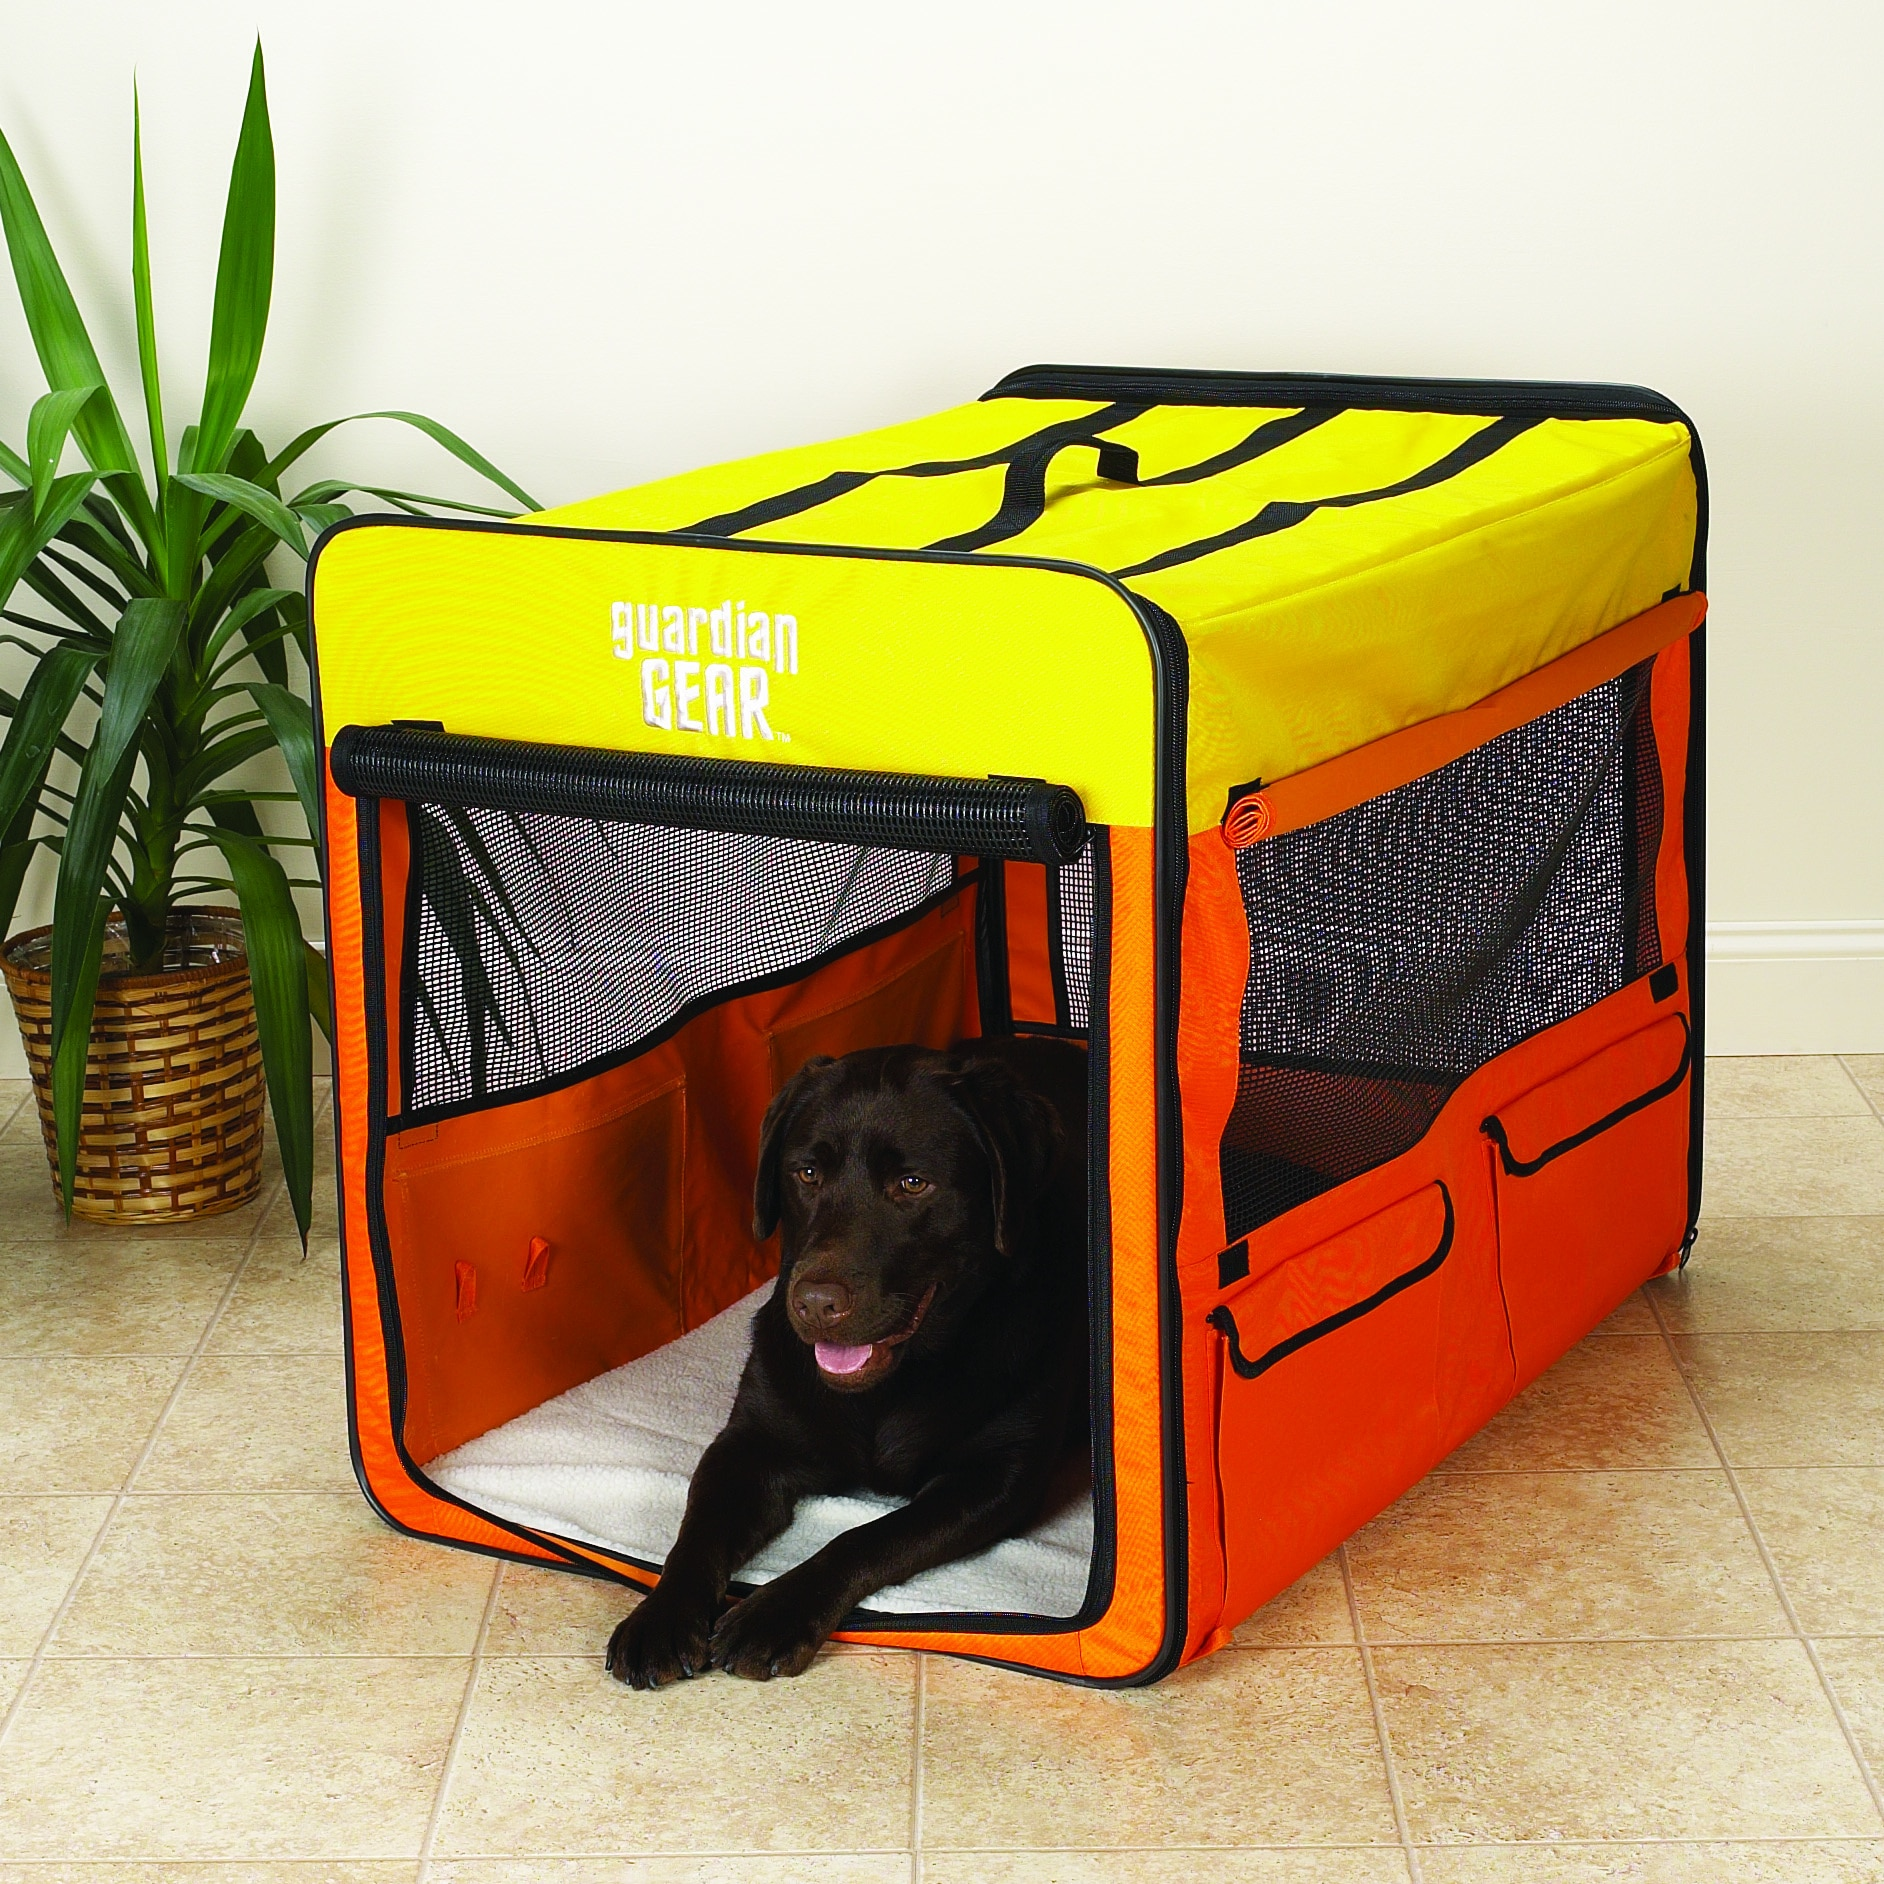 Guardian Gear Orange/ Yellow Large Collapsible Dog Crate ...